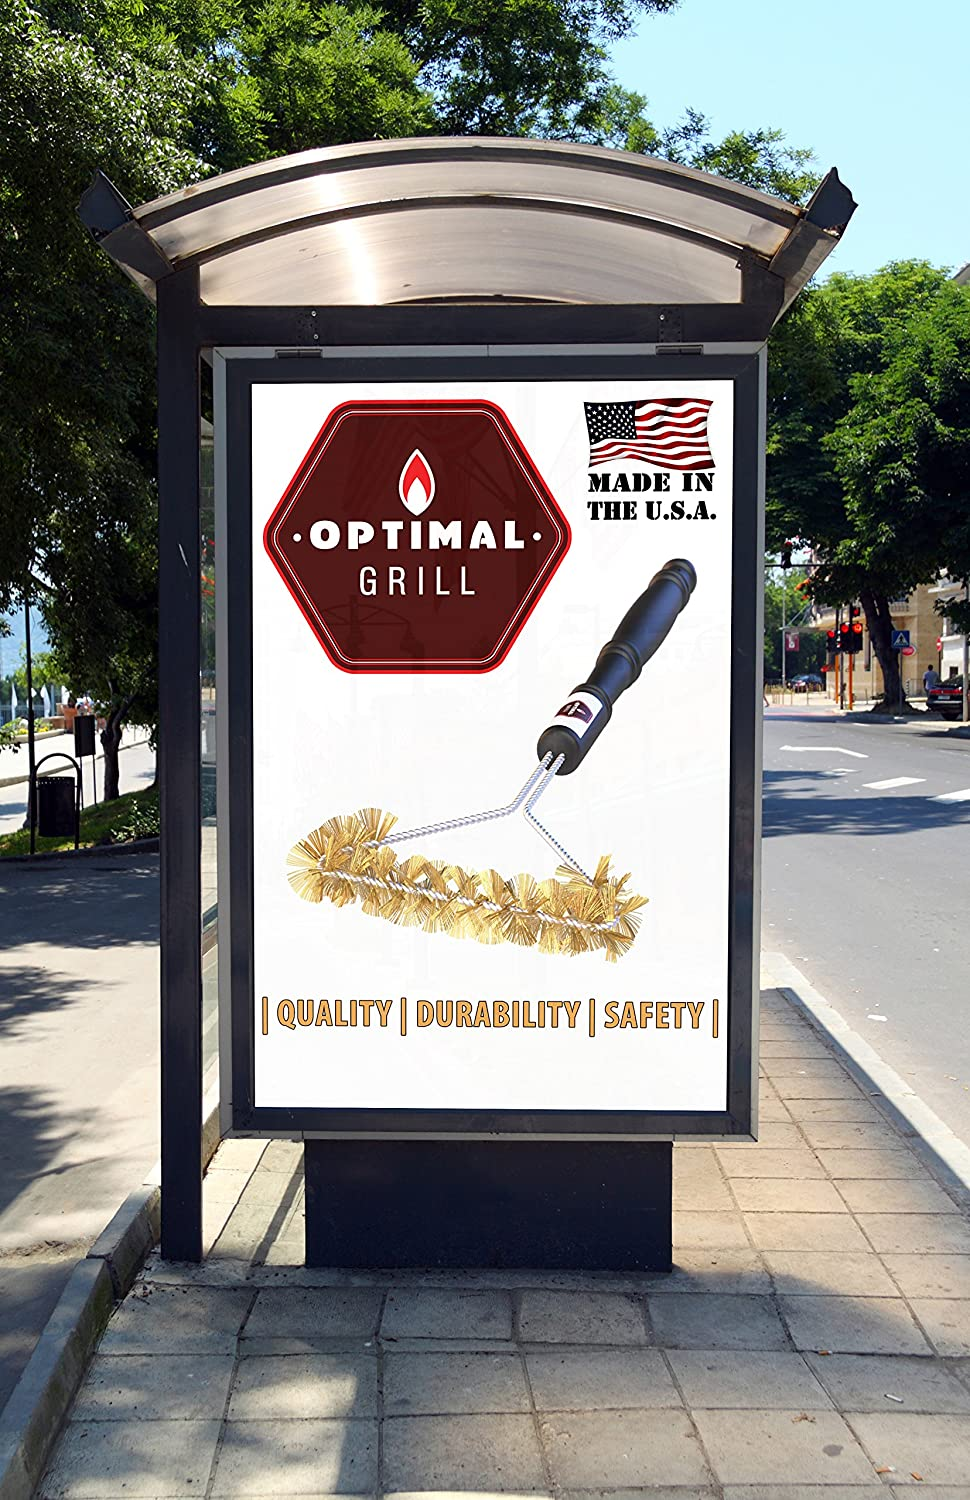 Optimal Grill Barbecue Grill Brush Made in USA sold on Amazon